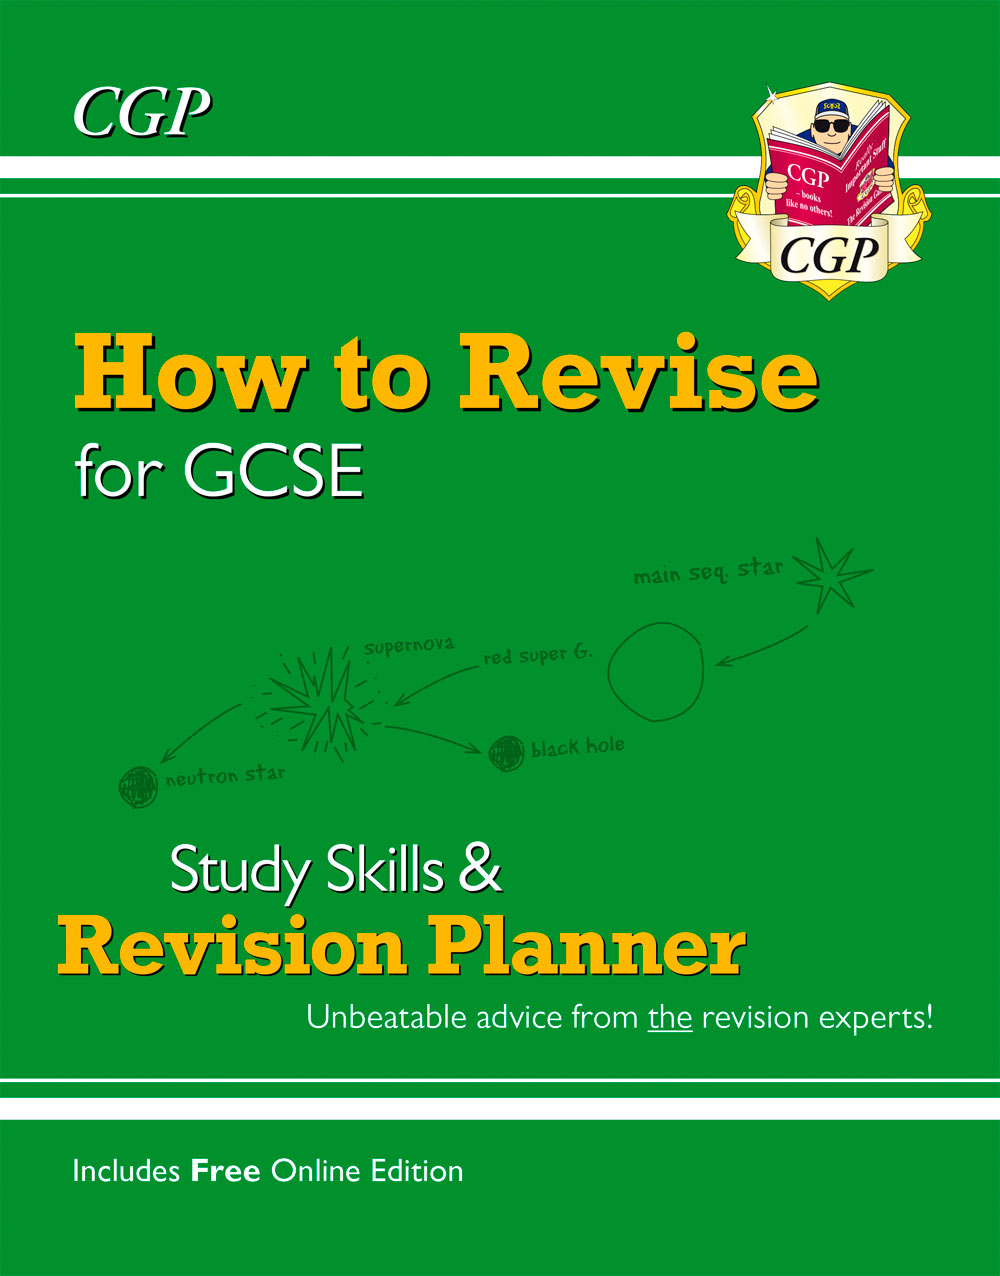 XHR41 - How to Revise for GCSE: Study Skills & Planner - from CGP, the Revision Experts (inc Online Edition)